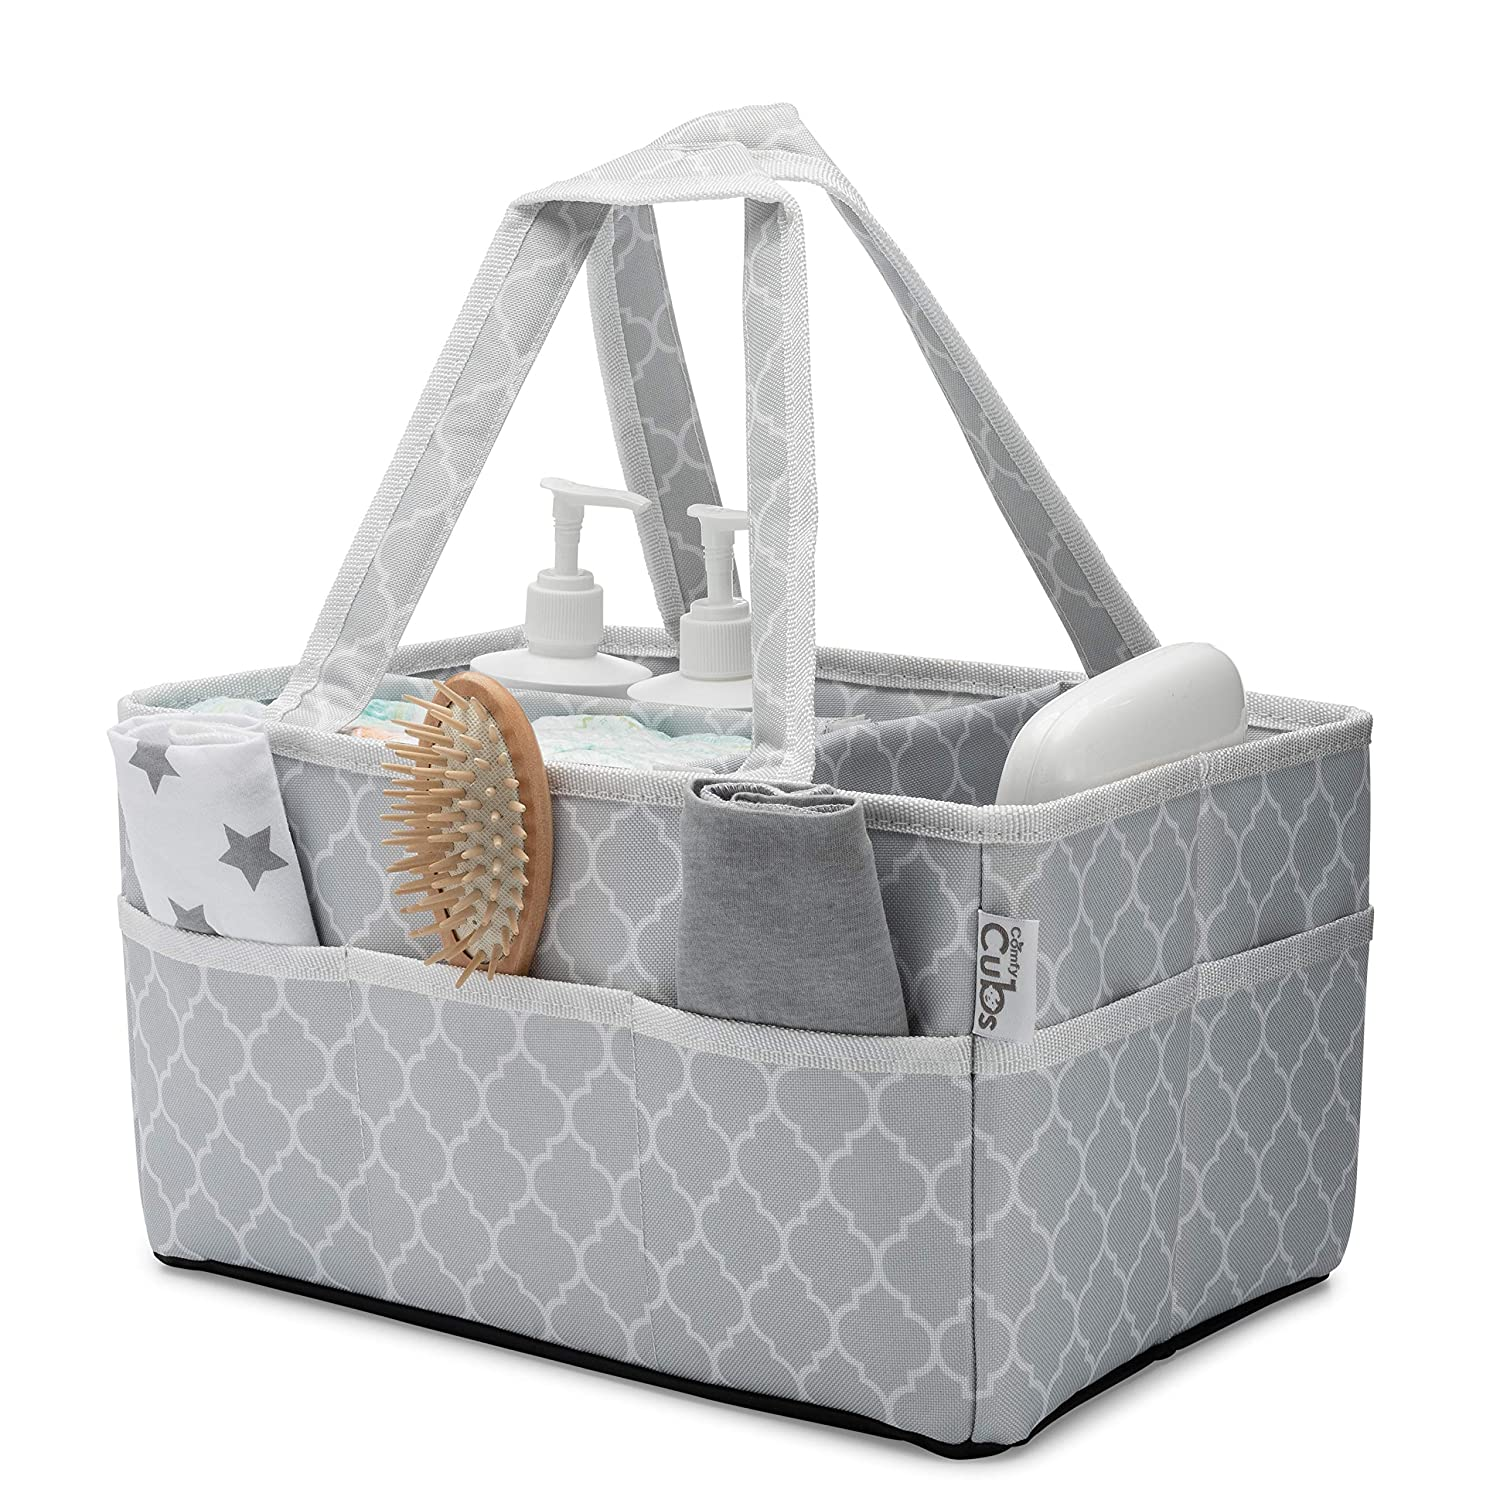 Baby Infant Diaper Organizer Caddy Pouch Felt Changing Nappy Storage Carrier Bag